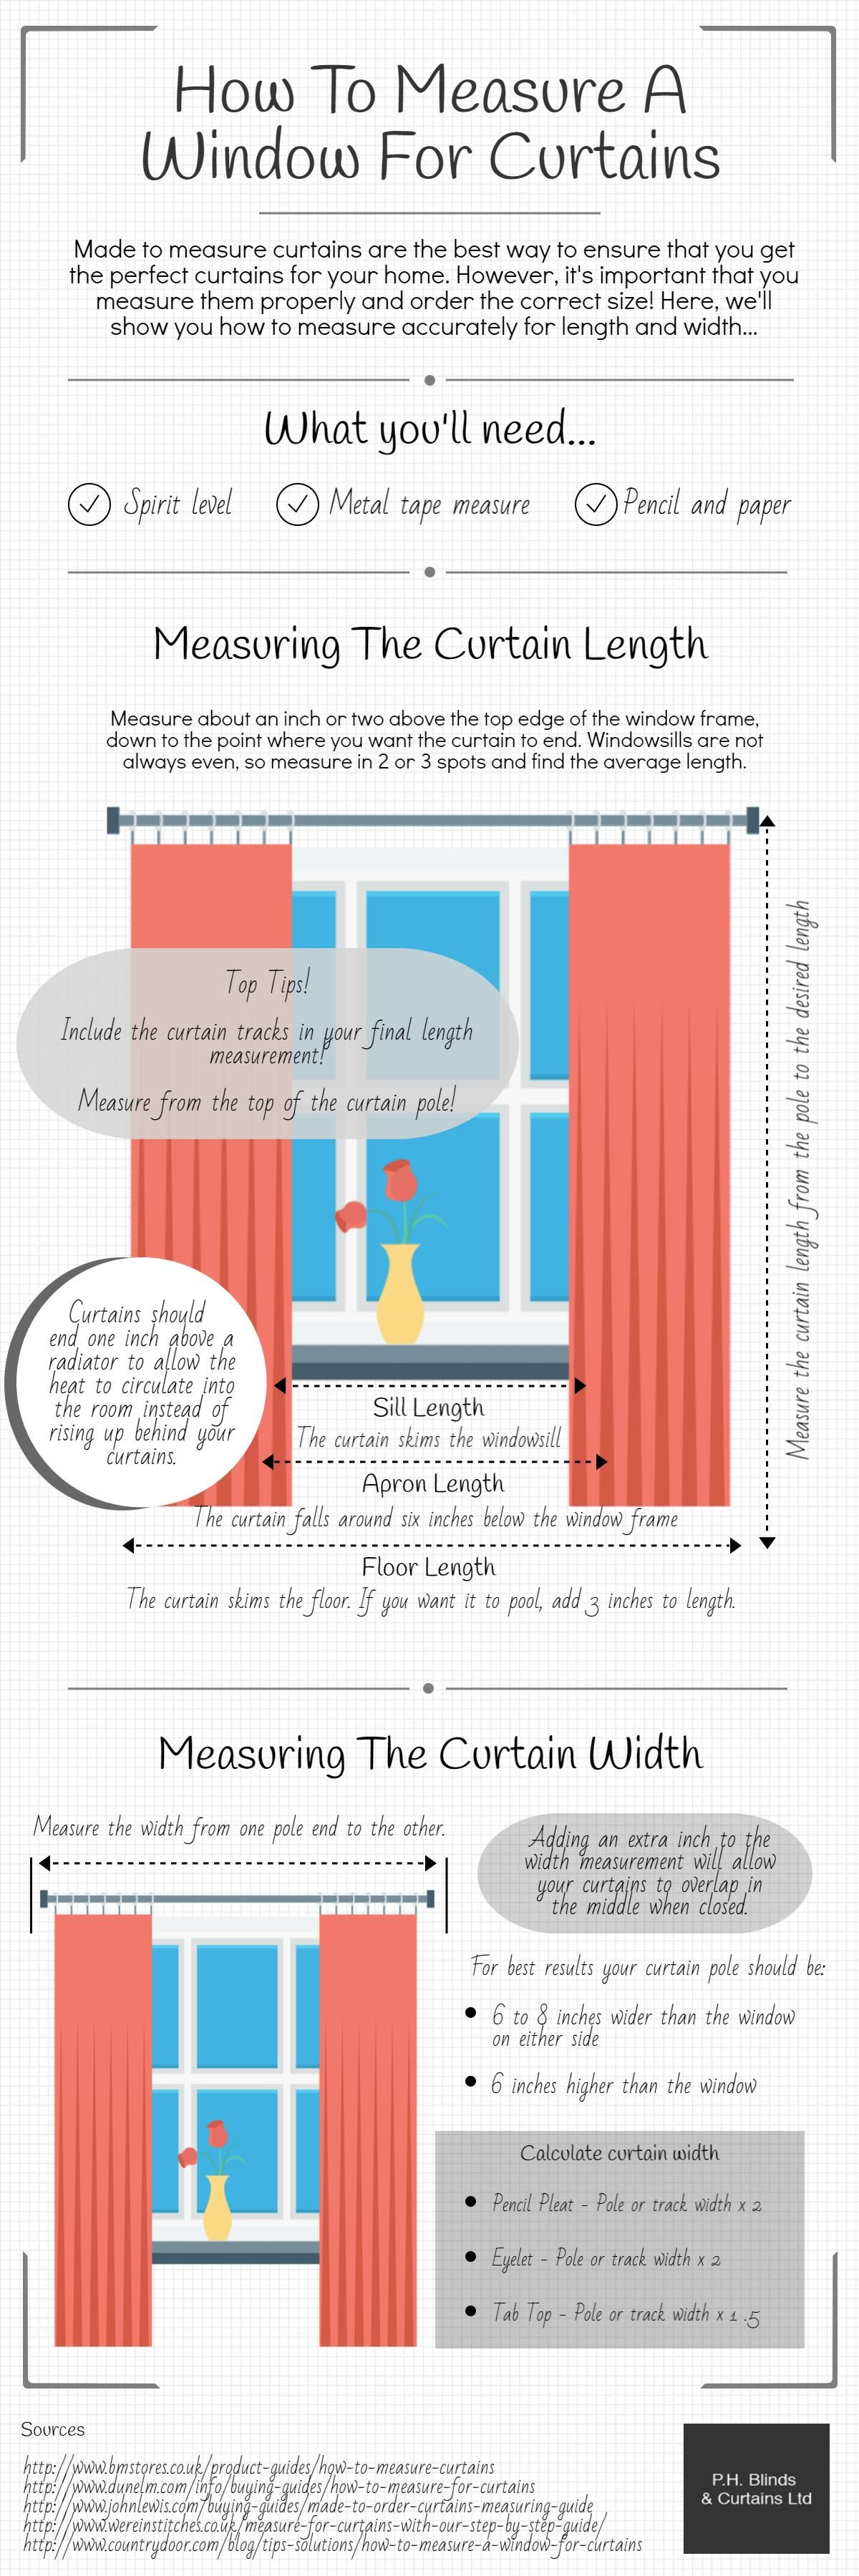 How to measure a window for curtains infographic ph